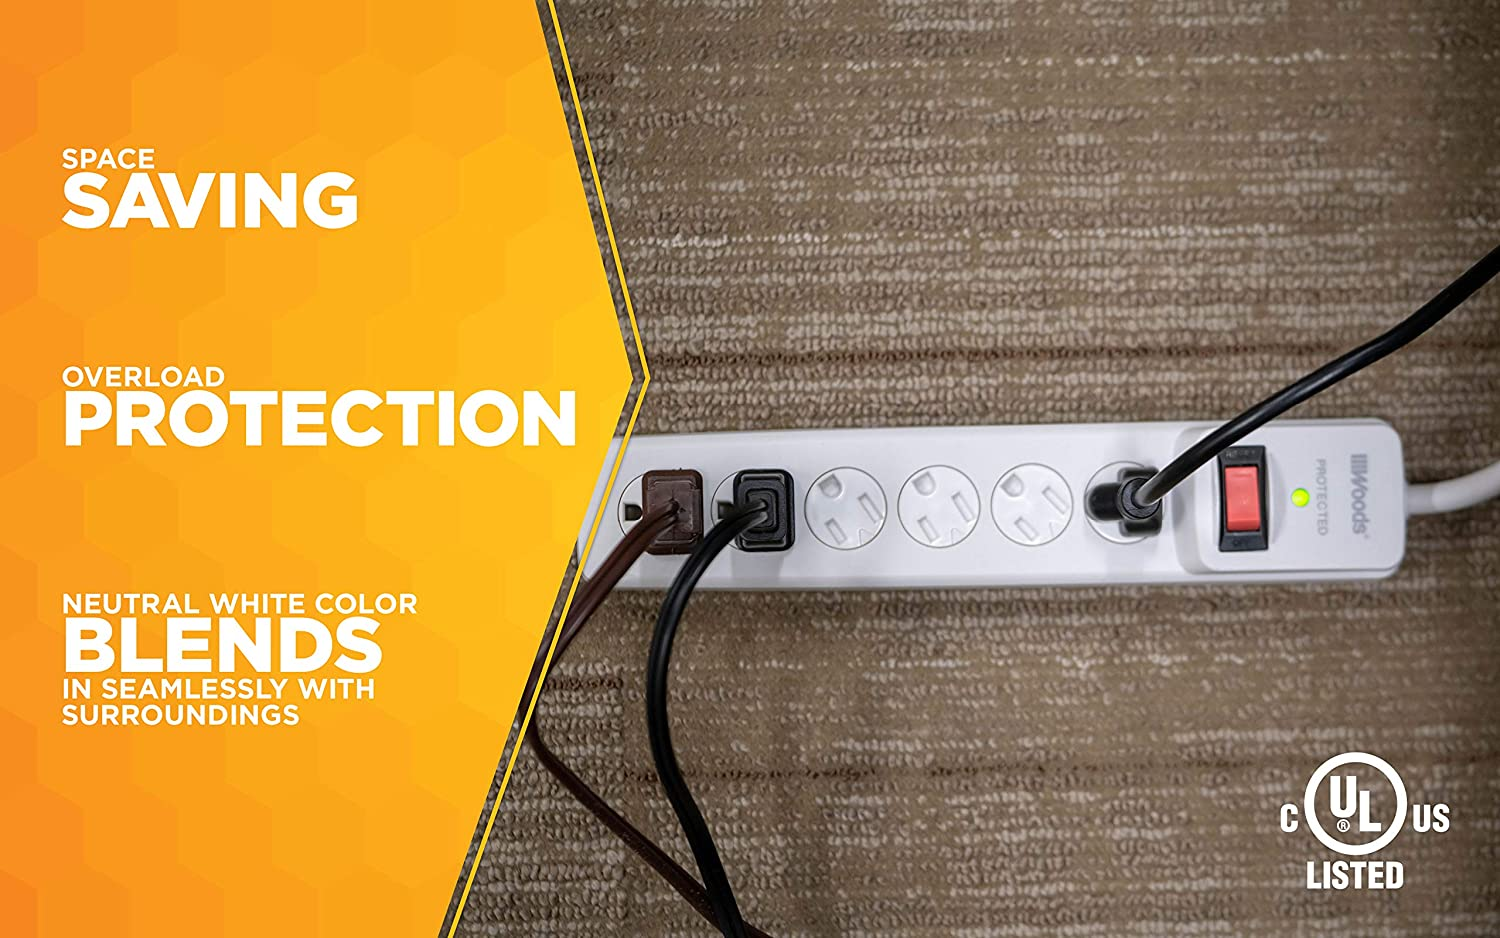 Amazon.com: WOODS WIRE SOUTHWIRE 41497 Surge Protector With Safety Overload Feature 6 Outlets For 900J Of Protection 3-Foot Cord White: Home Improvement